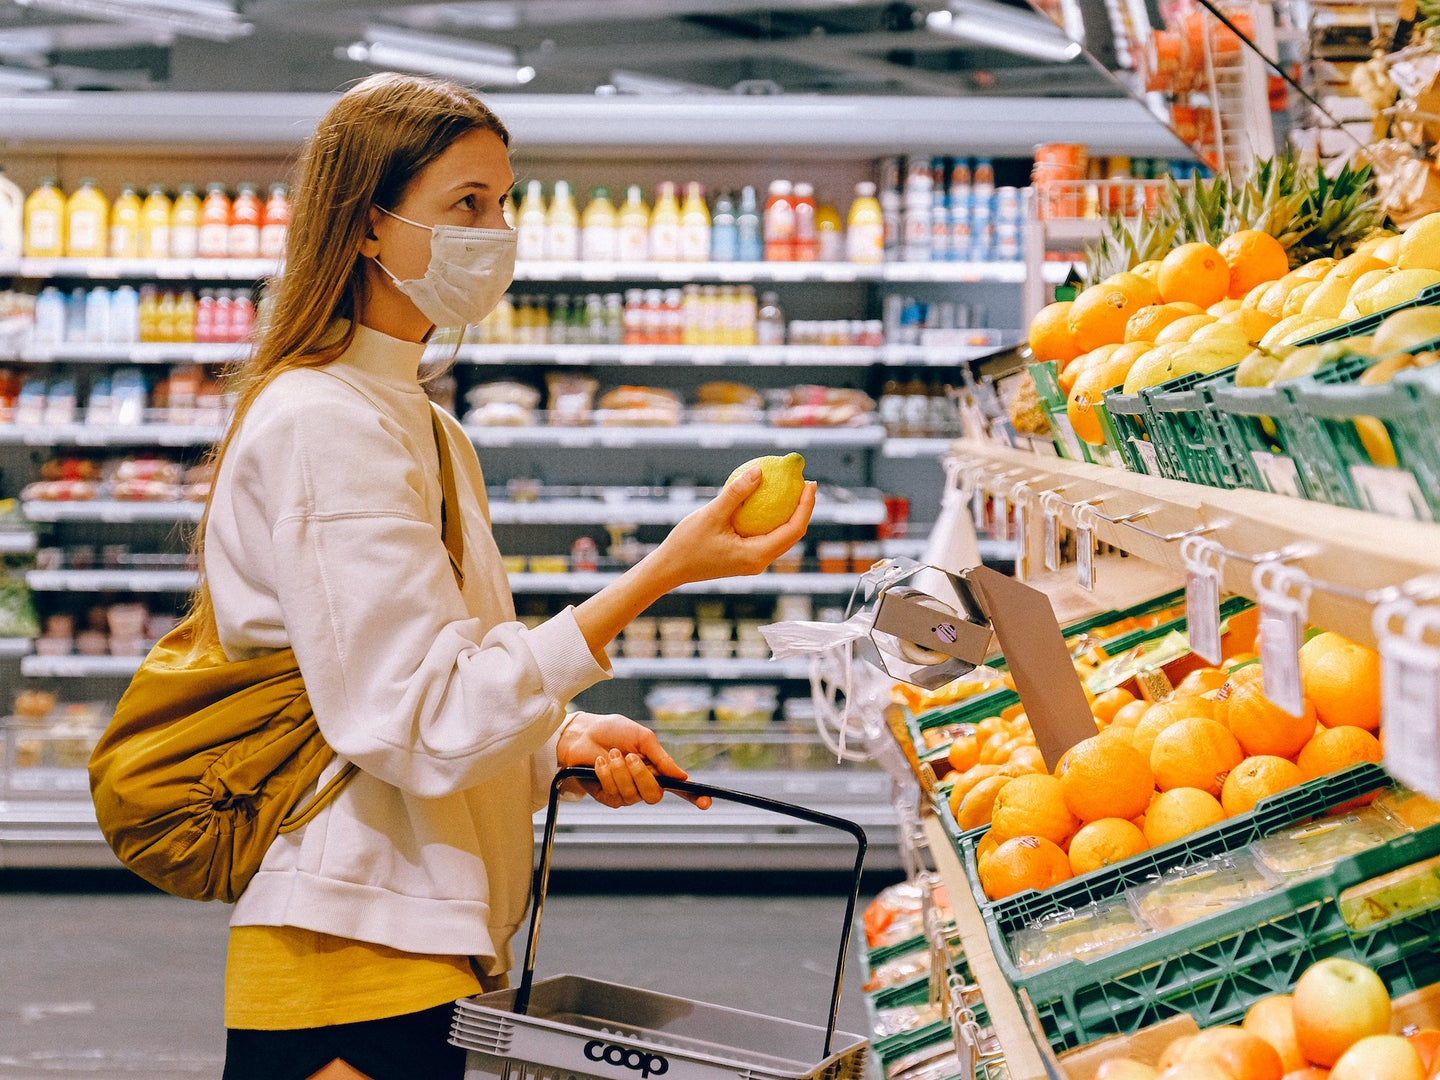 woman wearing a mask in a grocery store holding produce